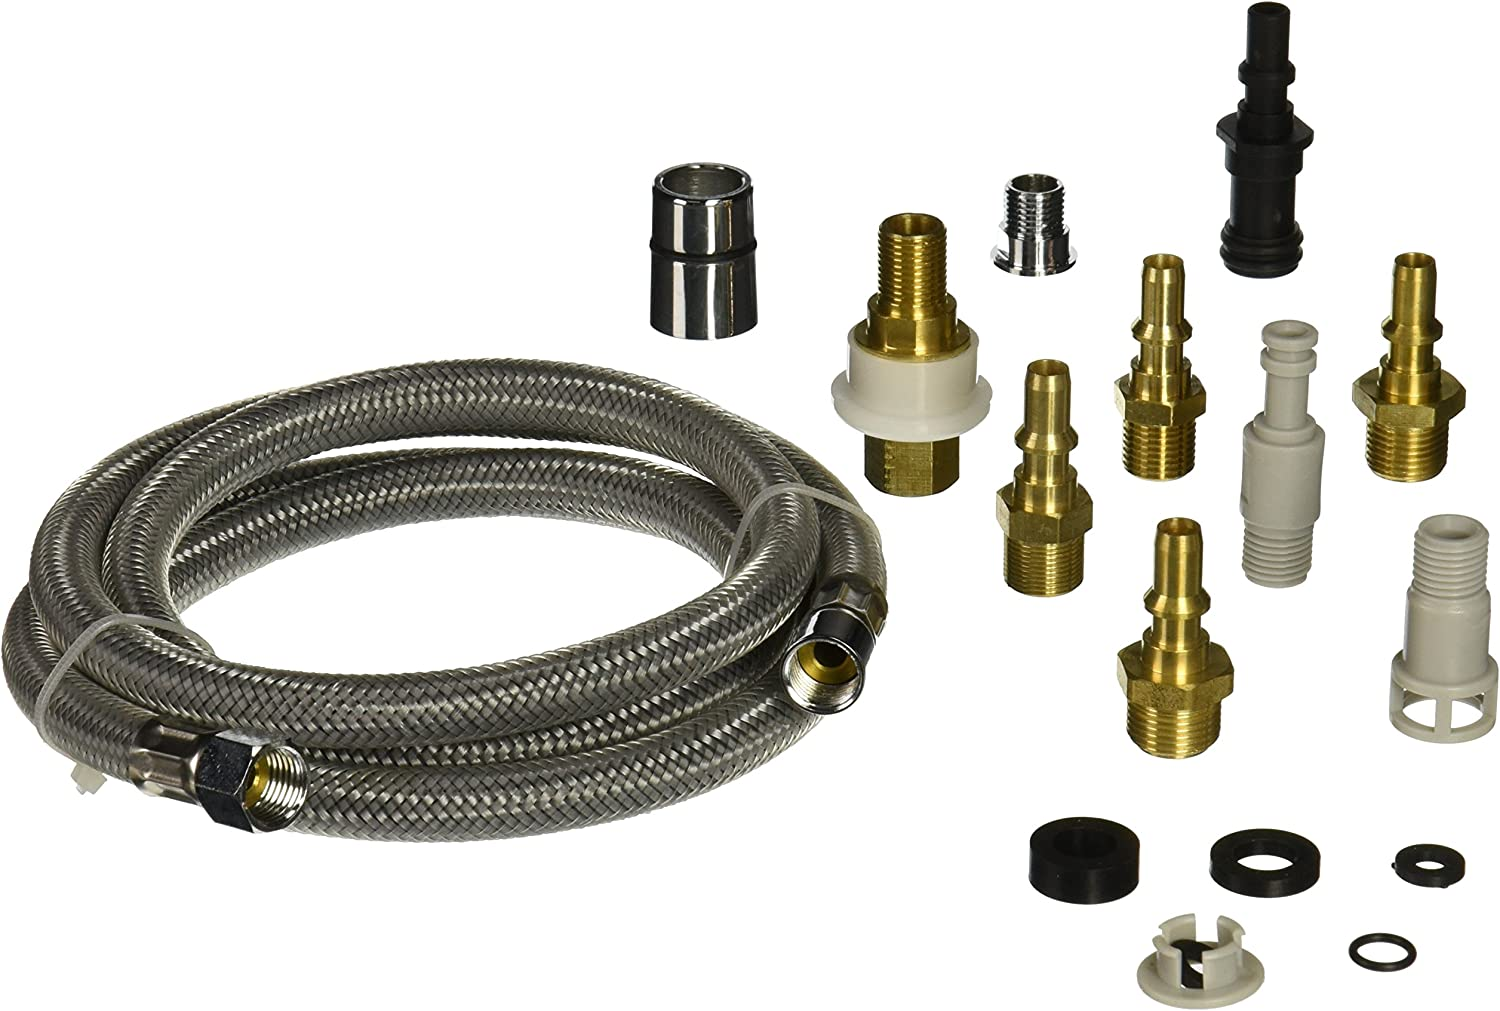 Danco Kitchen Faucet Pull Out Spray Hose Replacement Kit For Pullout Sprayer Heads Quick Connect Adapters 10 Piece Adapter Kit 57 Inch Nylon Hose 10339 Faucet Spray Hoses Amazon Com